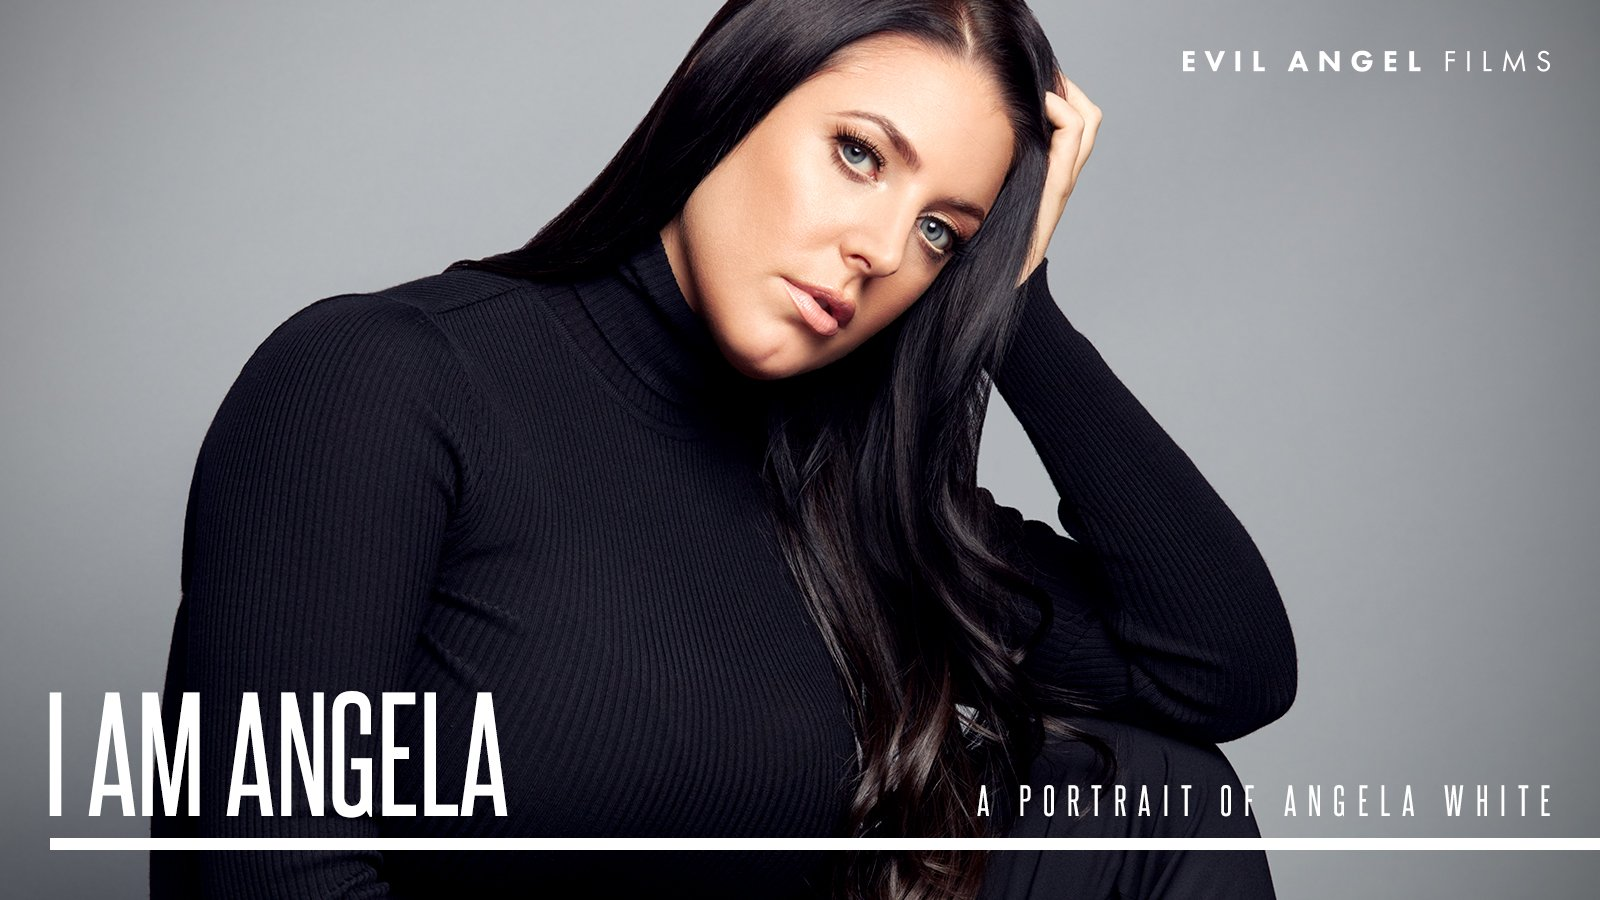 Angela White On Twitter Thank You Explicitbridget For Taking The Time To Interview Me About My New Showcase From Evilangelvideo I Am Angela Read It Here Https T Co Pzeij7693e Https T Co Scae6ikwpu